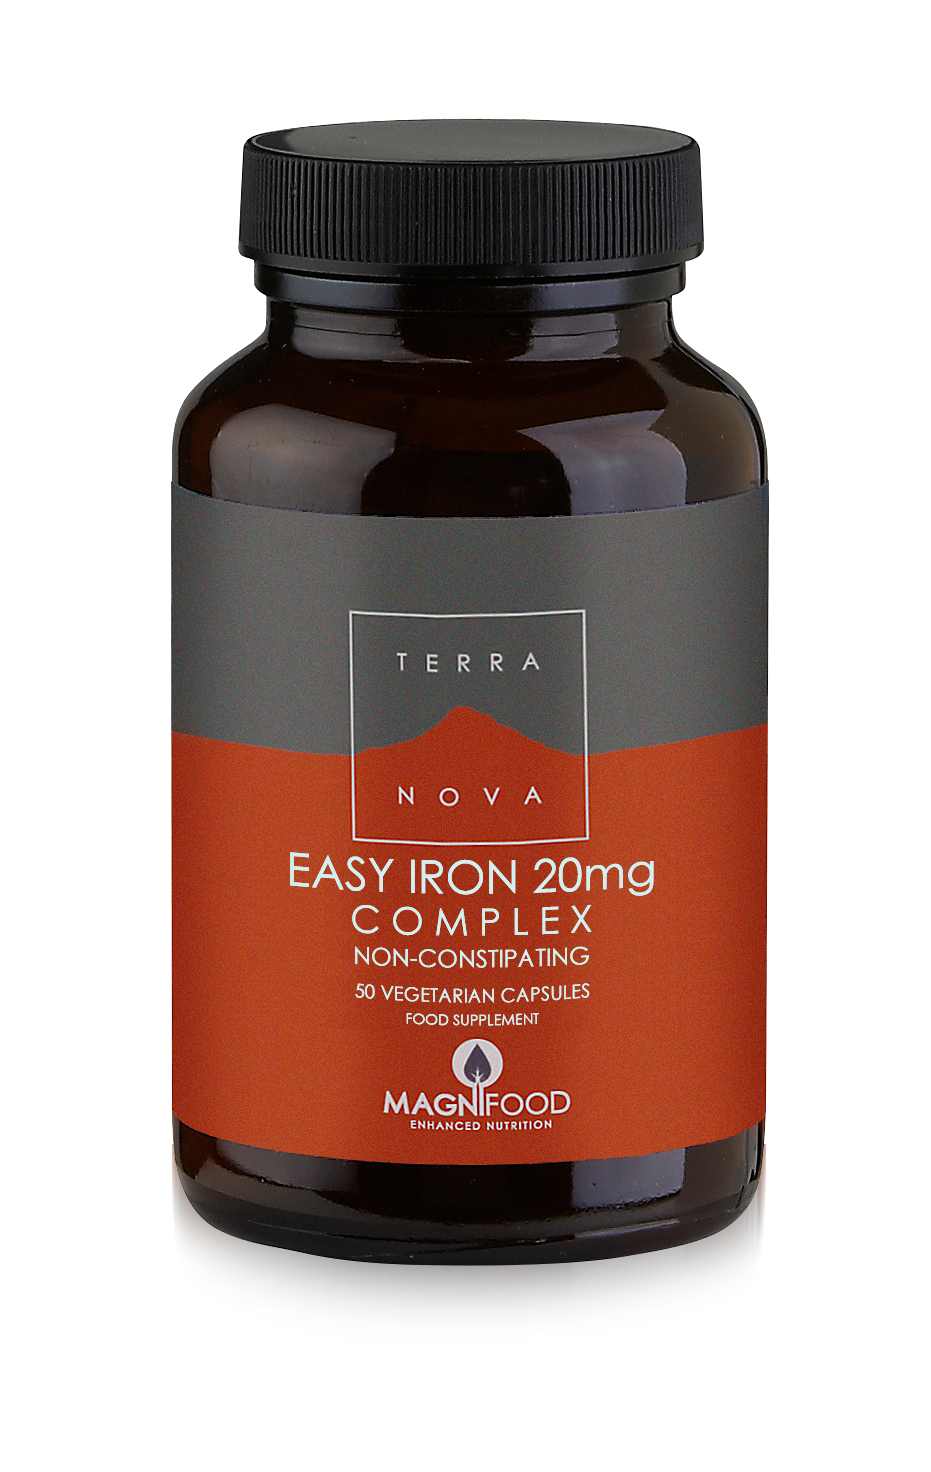 EASY IRON 20mg COMPLEX 50